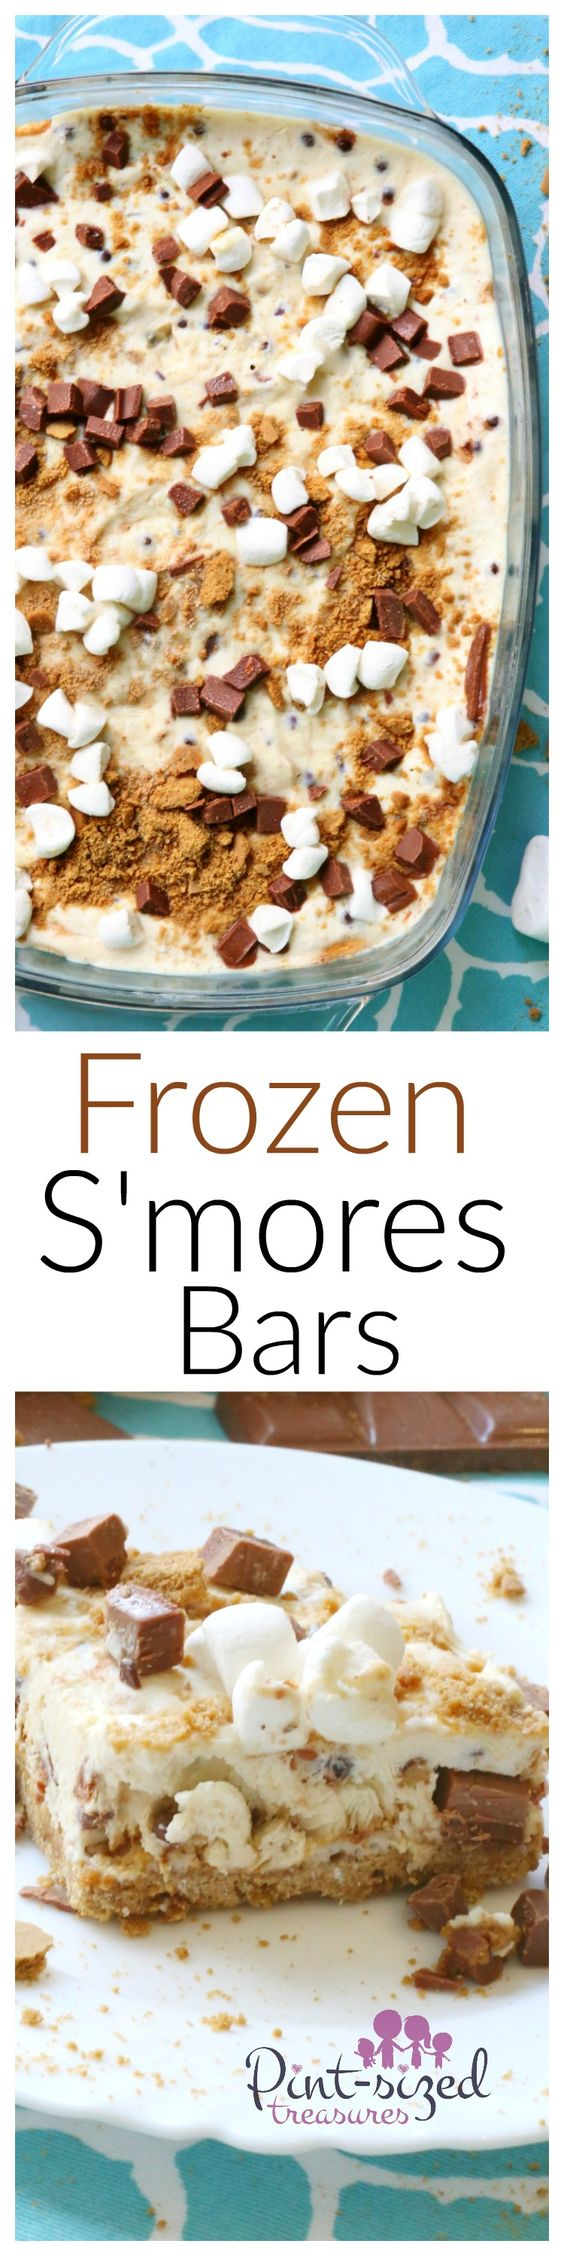 Calling all s'mores fans! Try these fun frozen yogurt s'mores bars to change up your s'mores routine a bit! Enjoy all the marshmallowy goodness without having to start a fire! Ready for some toasted marshmallows layered with chocolate and graham cracker crumbs? Snag the recipe now -- after you wipe your drool!